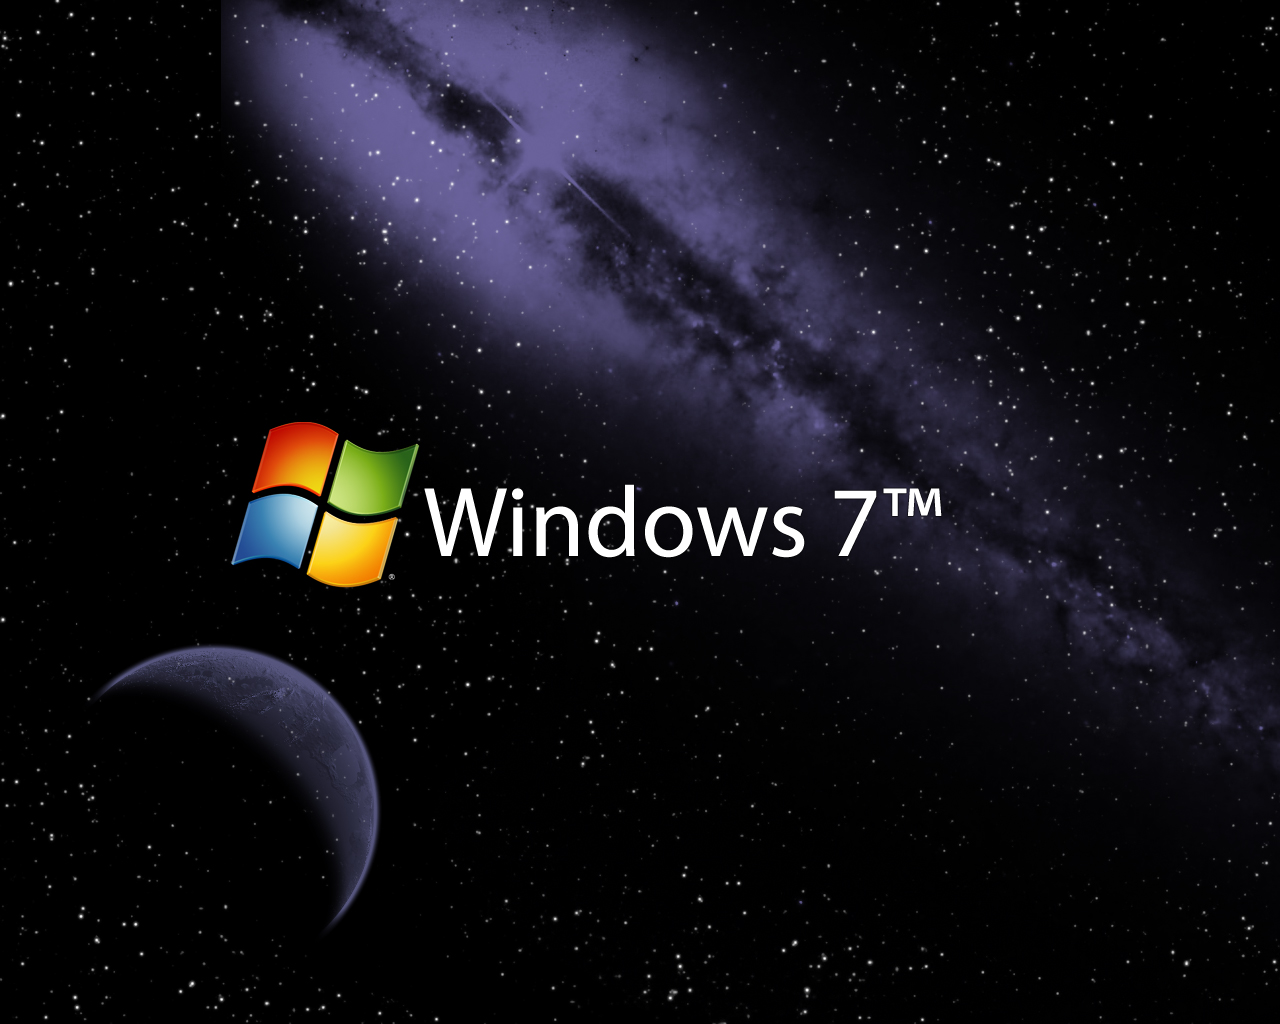 Space Wallpaper Windows 7